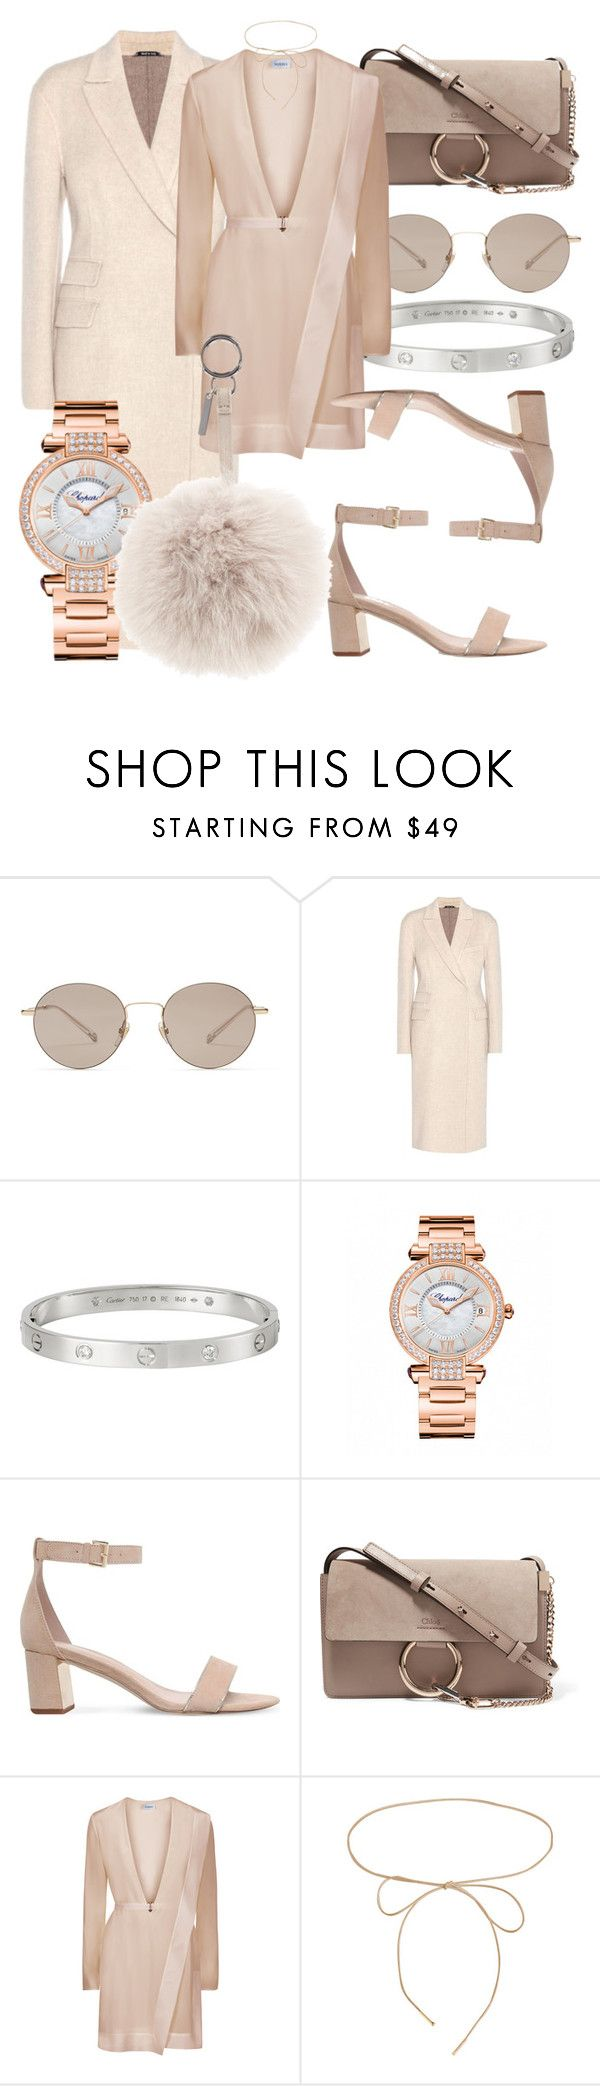 """#Look:#378"" by dollarwomanlux ❤ liked on Polyvore featuring Gucci, Maison Margiela, Cartier, Chopard, Carvela, Chloé, Lilou and Fendi"